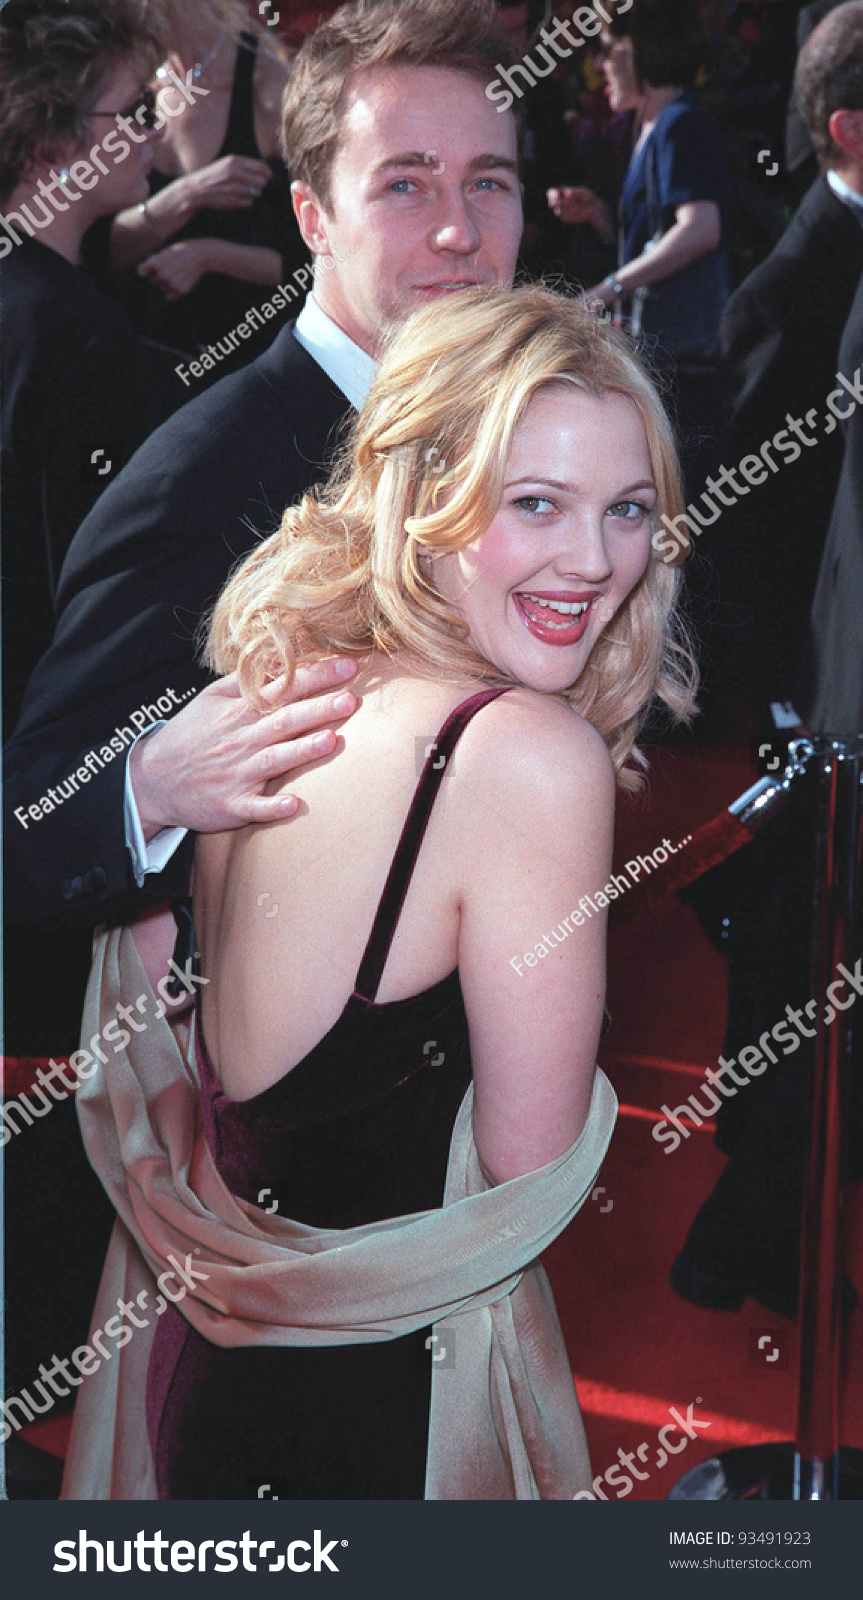 edward norton and drew barrymore dating history